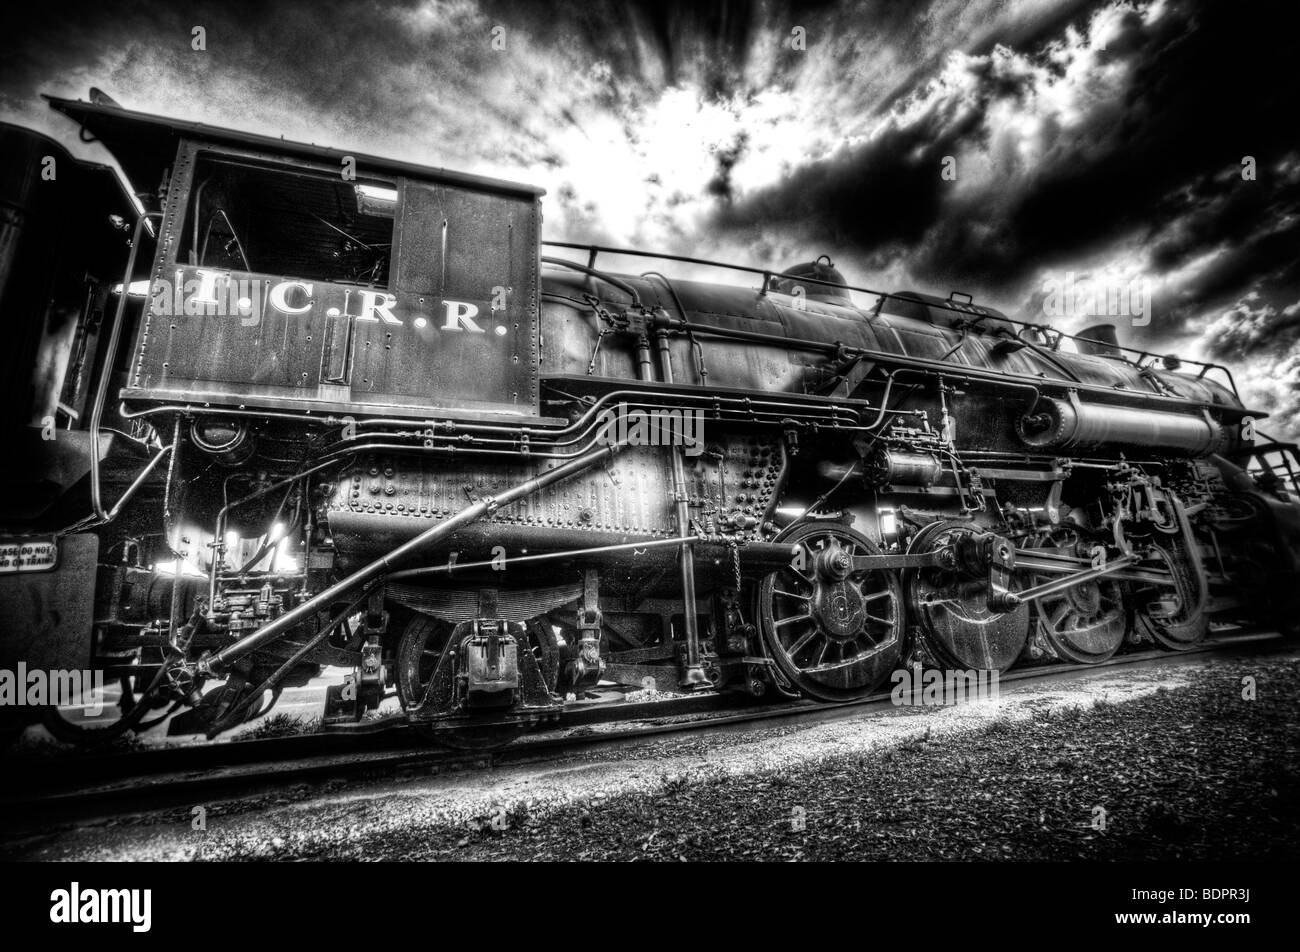 An old locomotive engine - Stock Image